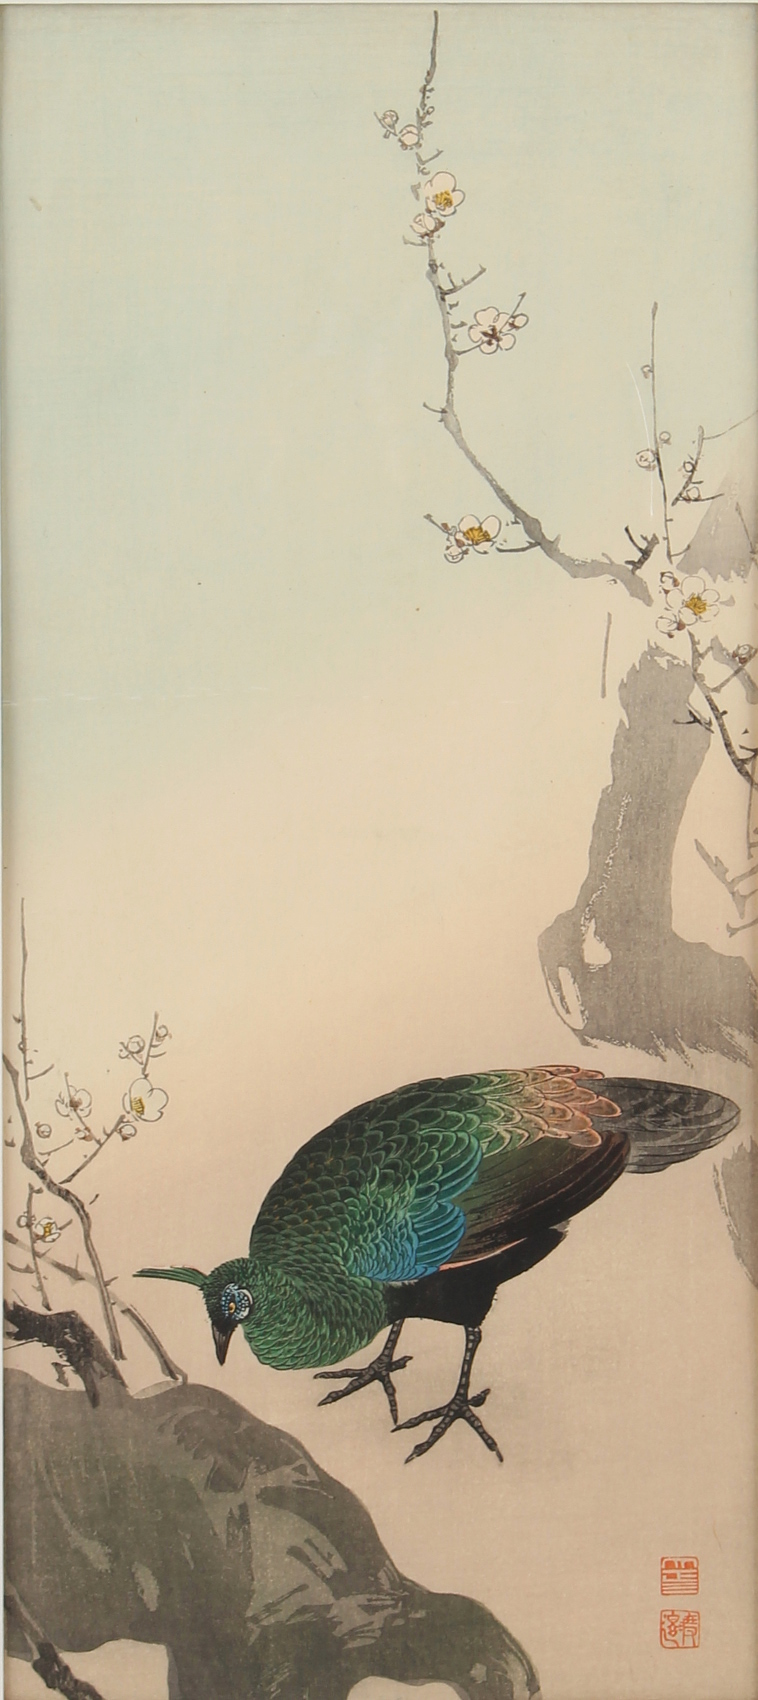 A collection of Japanese woodblock prints - Peacock & Prunus (early 20th century) - mounted but